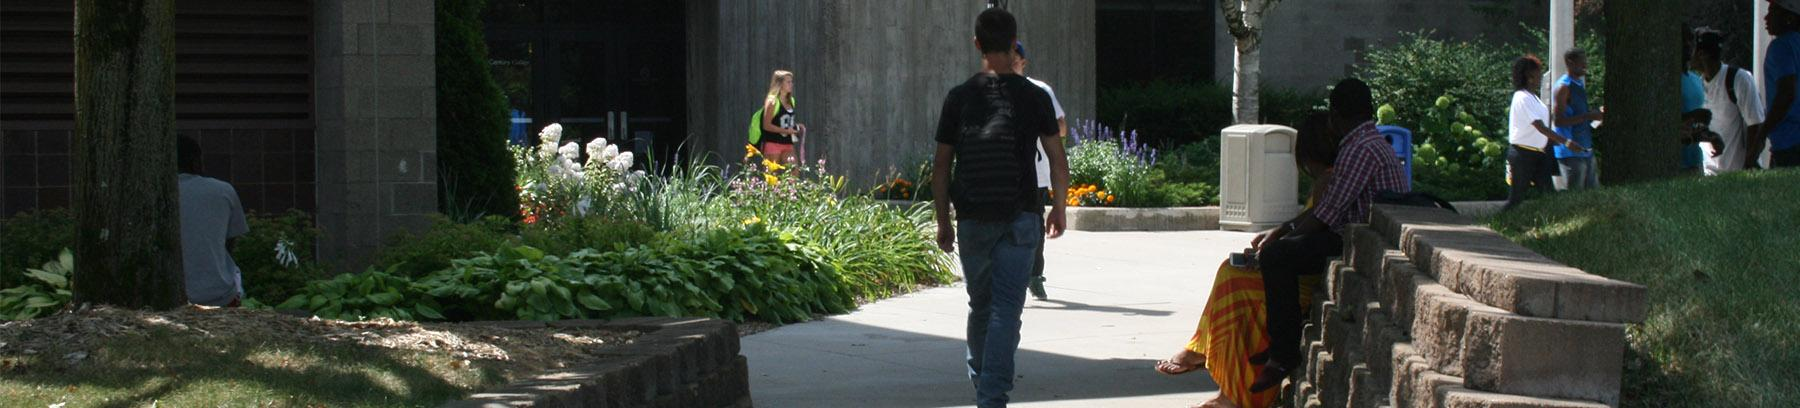 student outside west campus